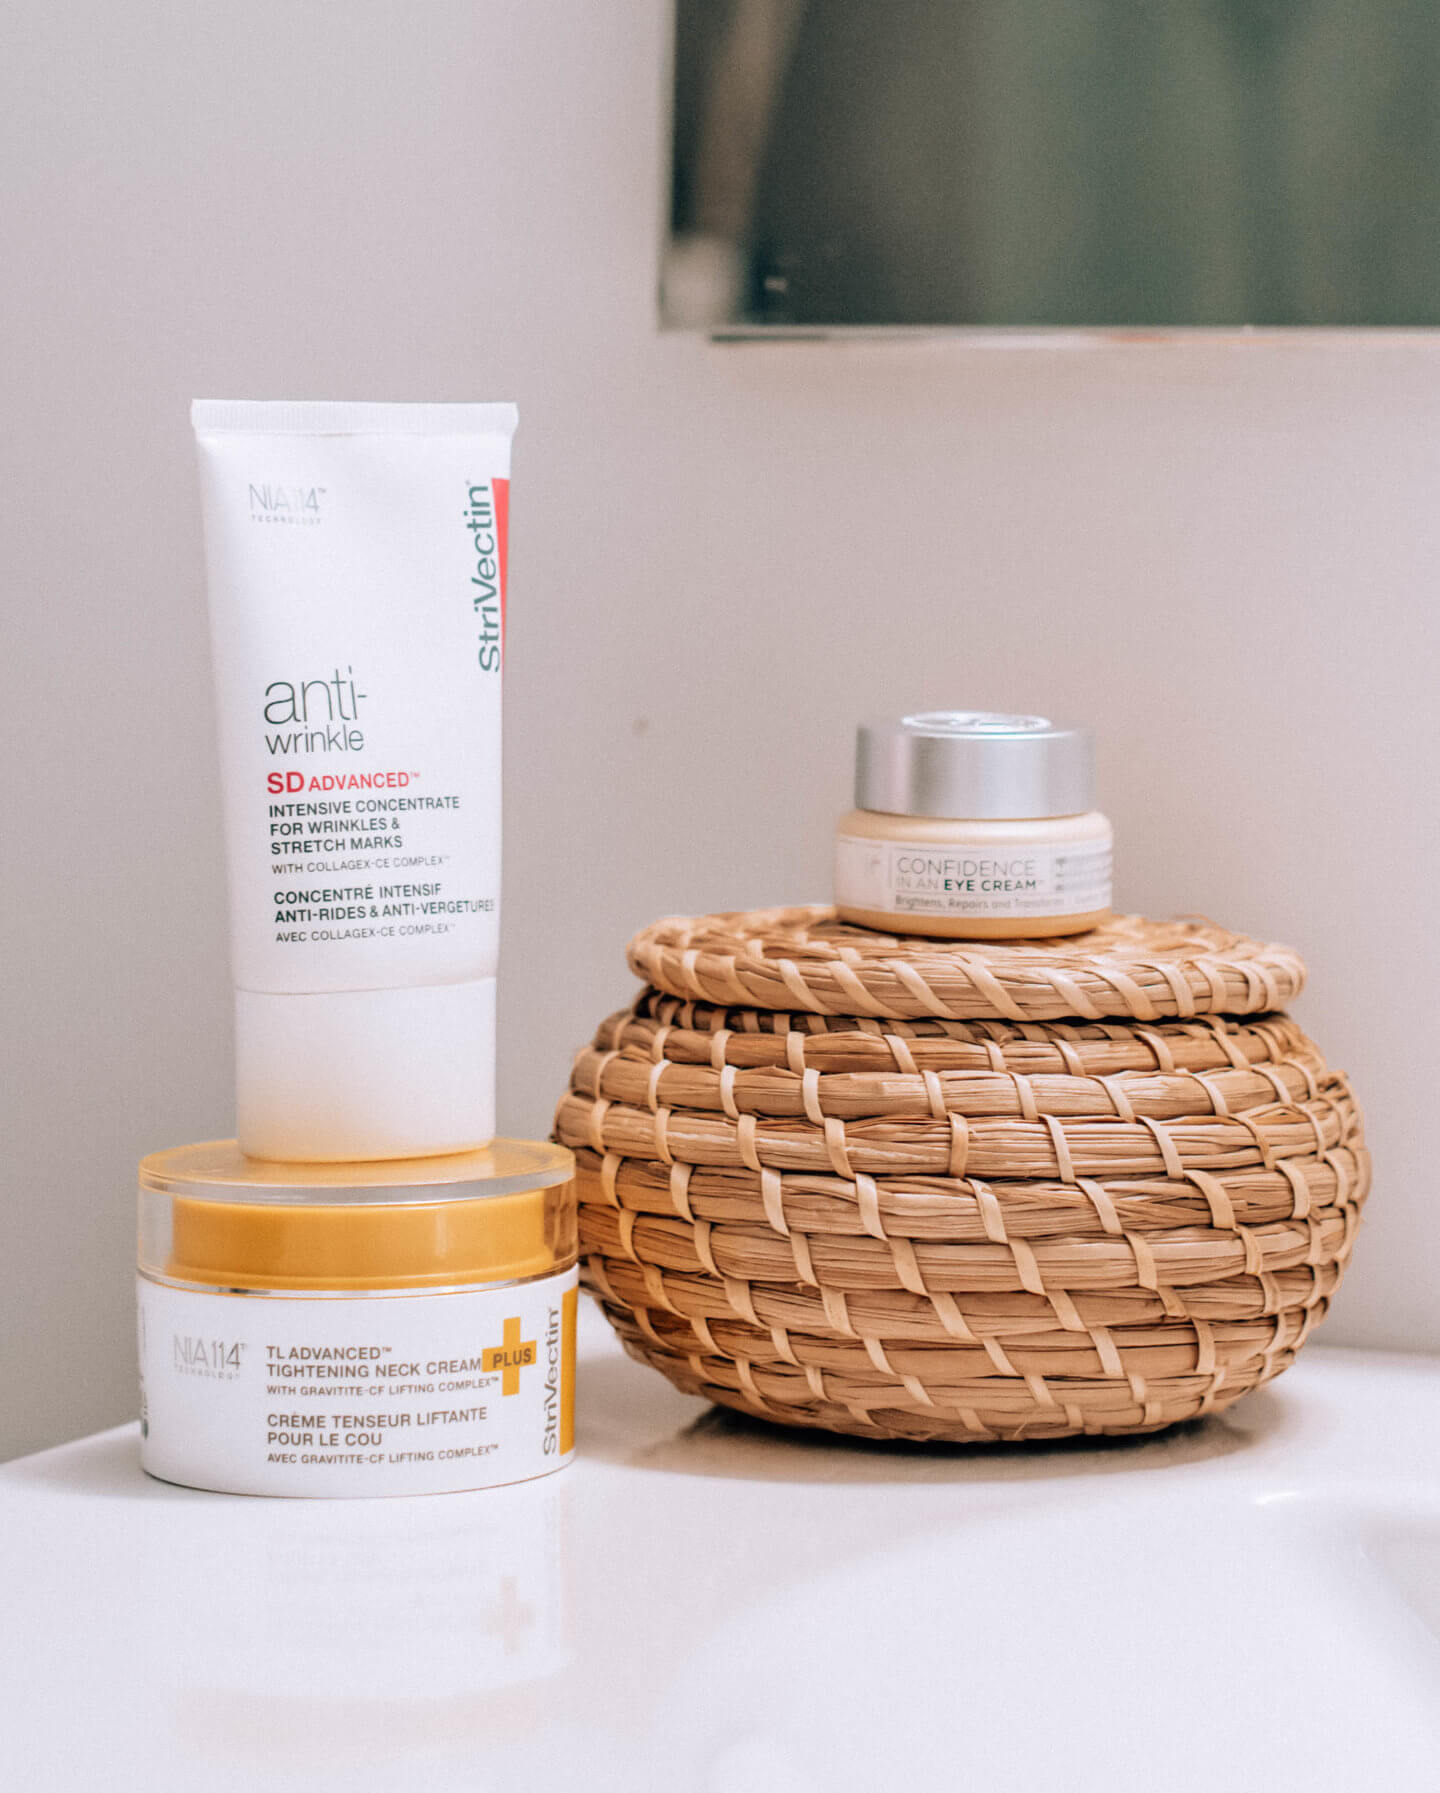 Skincare after 30 tips from What The Fab